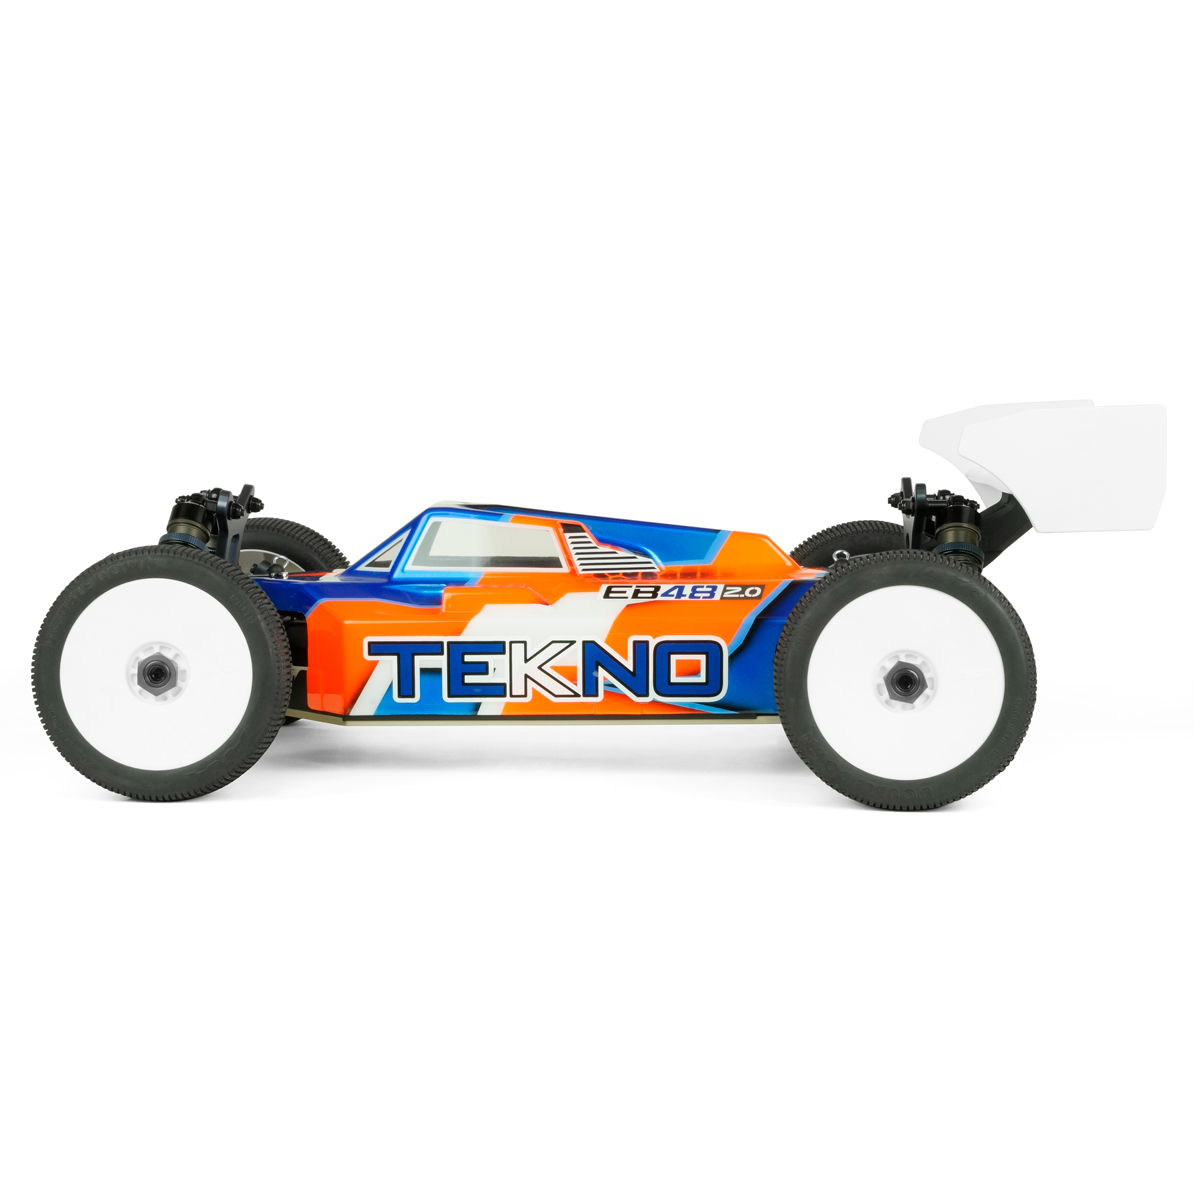 Tekno RC EB48 2.0 Parts